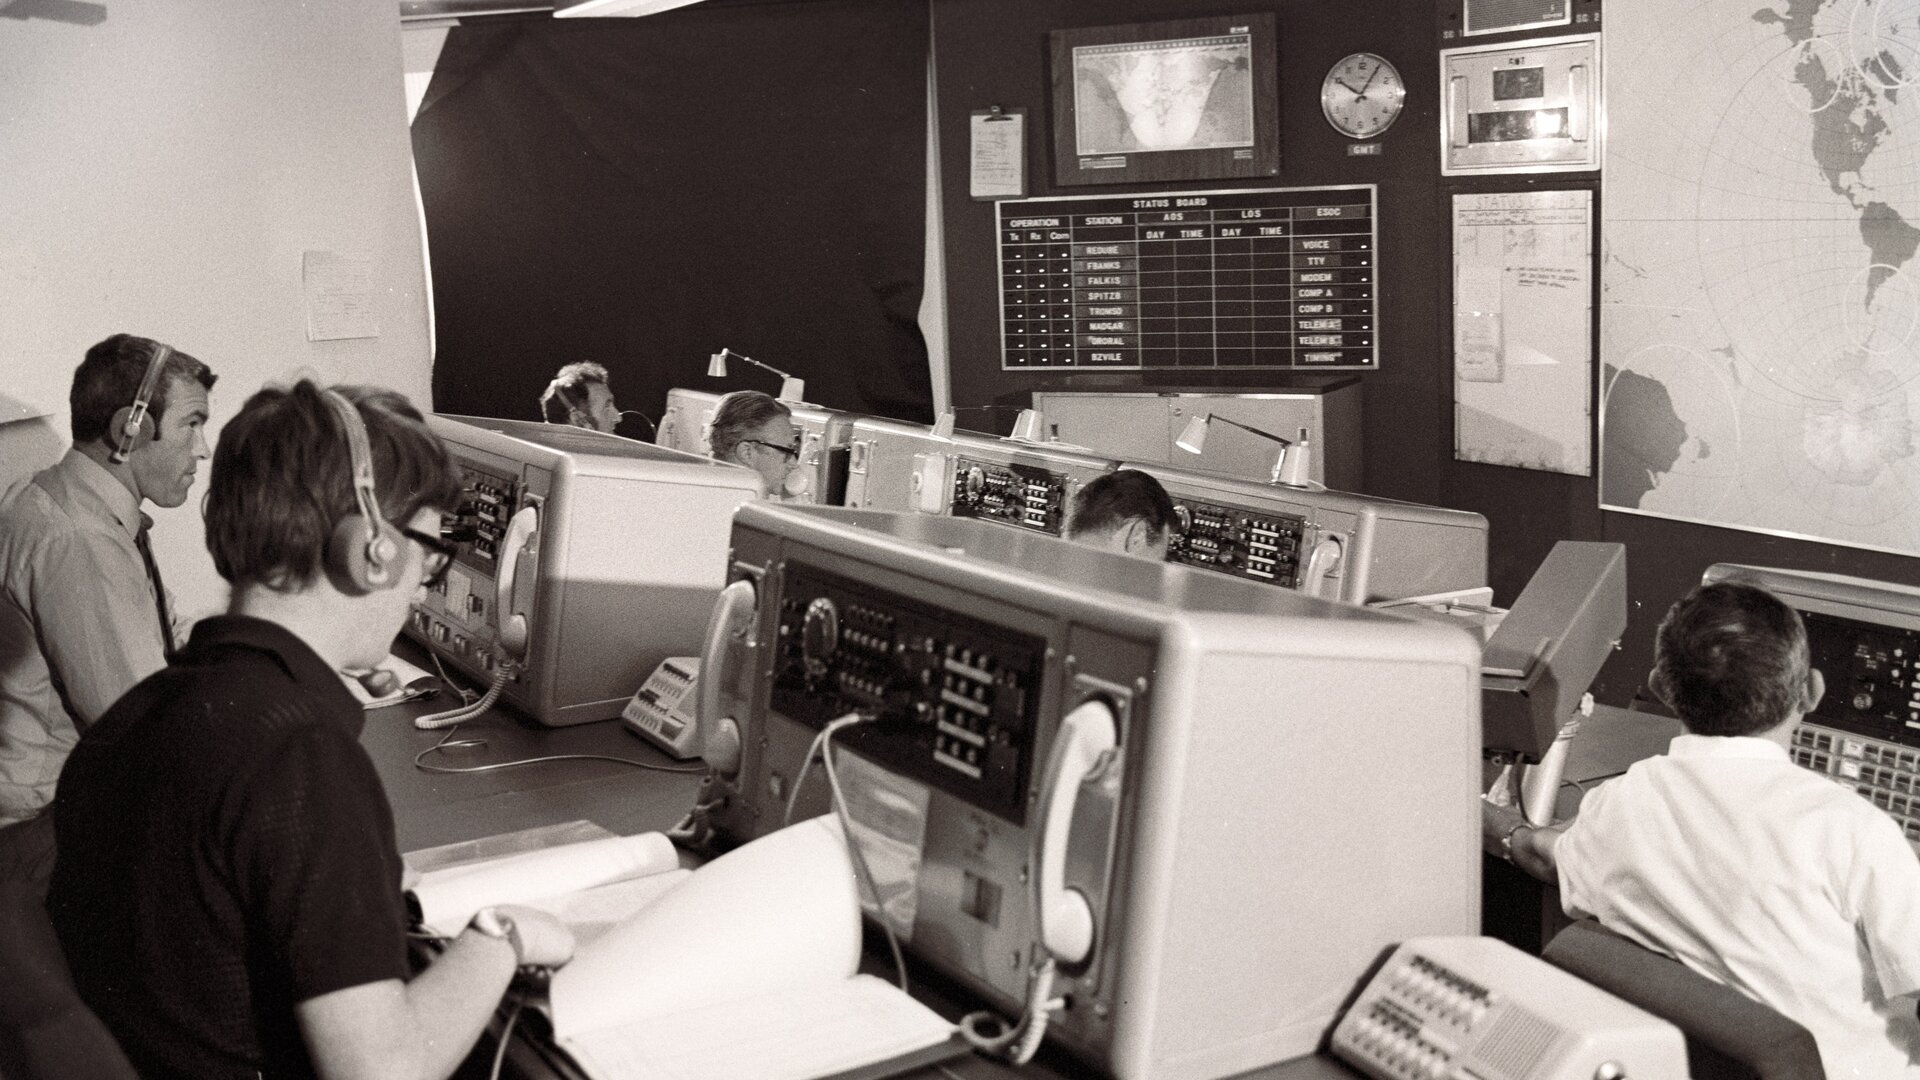 Control facilities in the 1960s